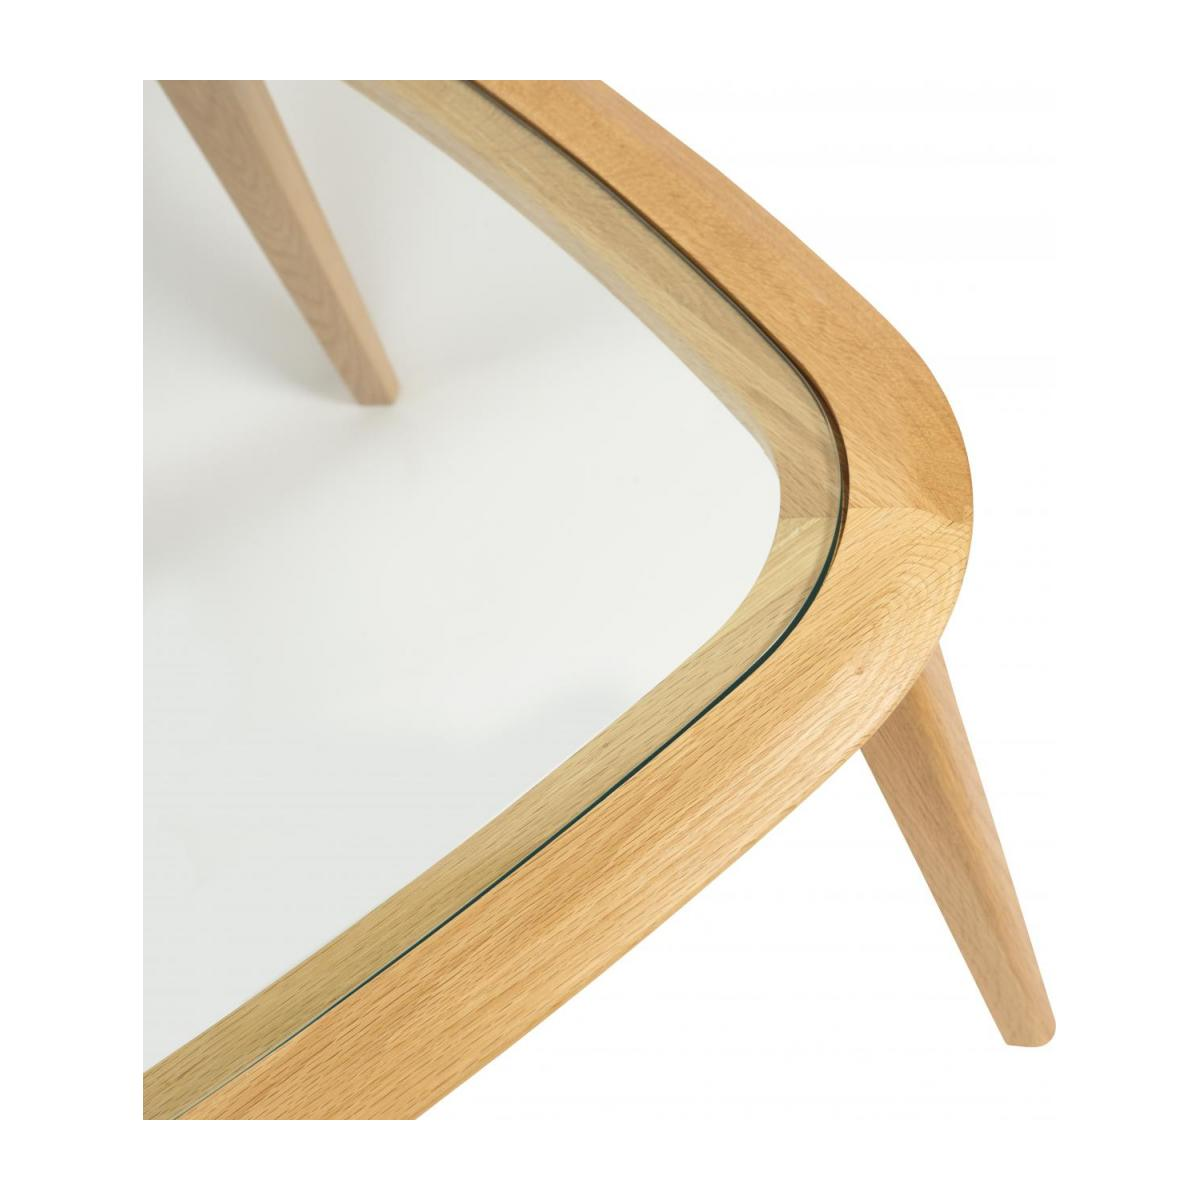 Table basse - Chêne et Verre - Design by Habitat Design Studio n°5